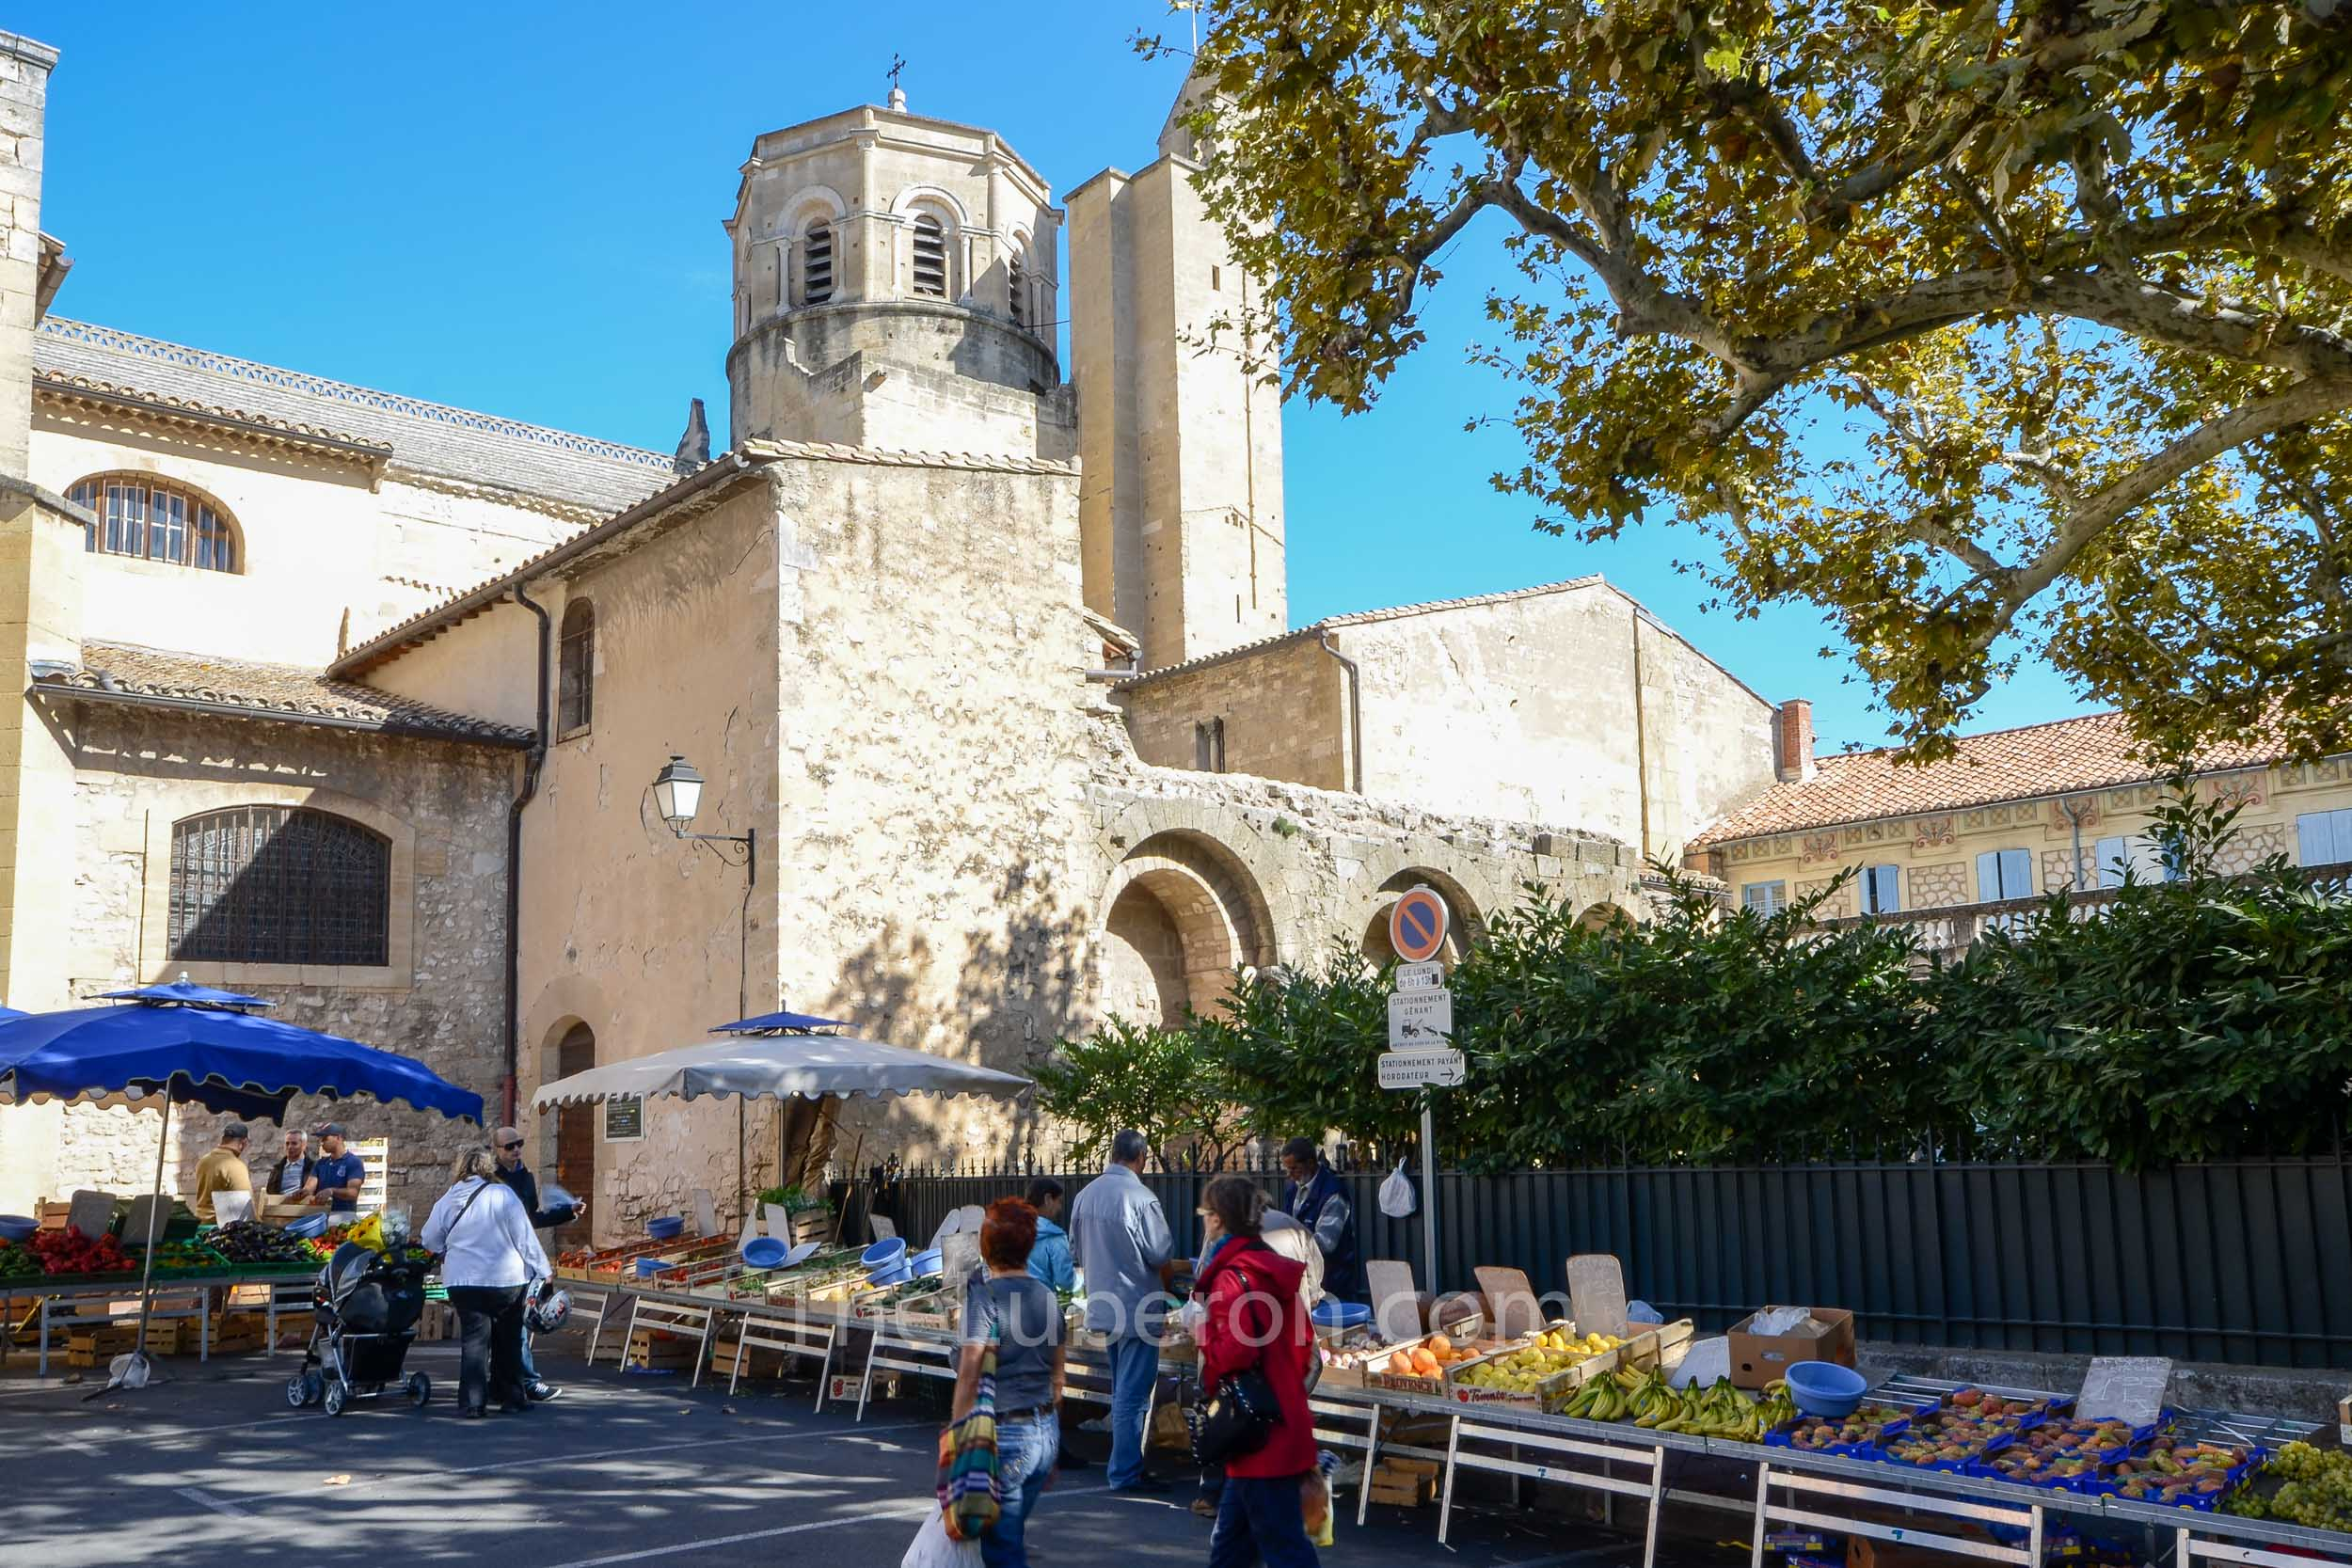 Stalls by the church at Cavaillon market